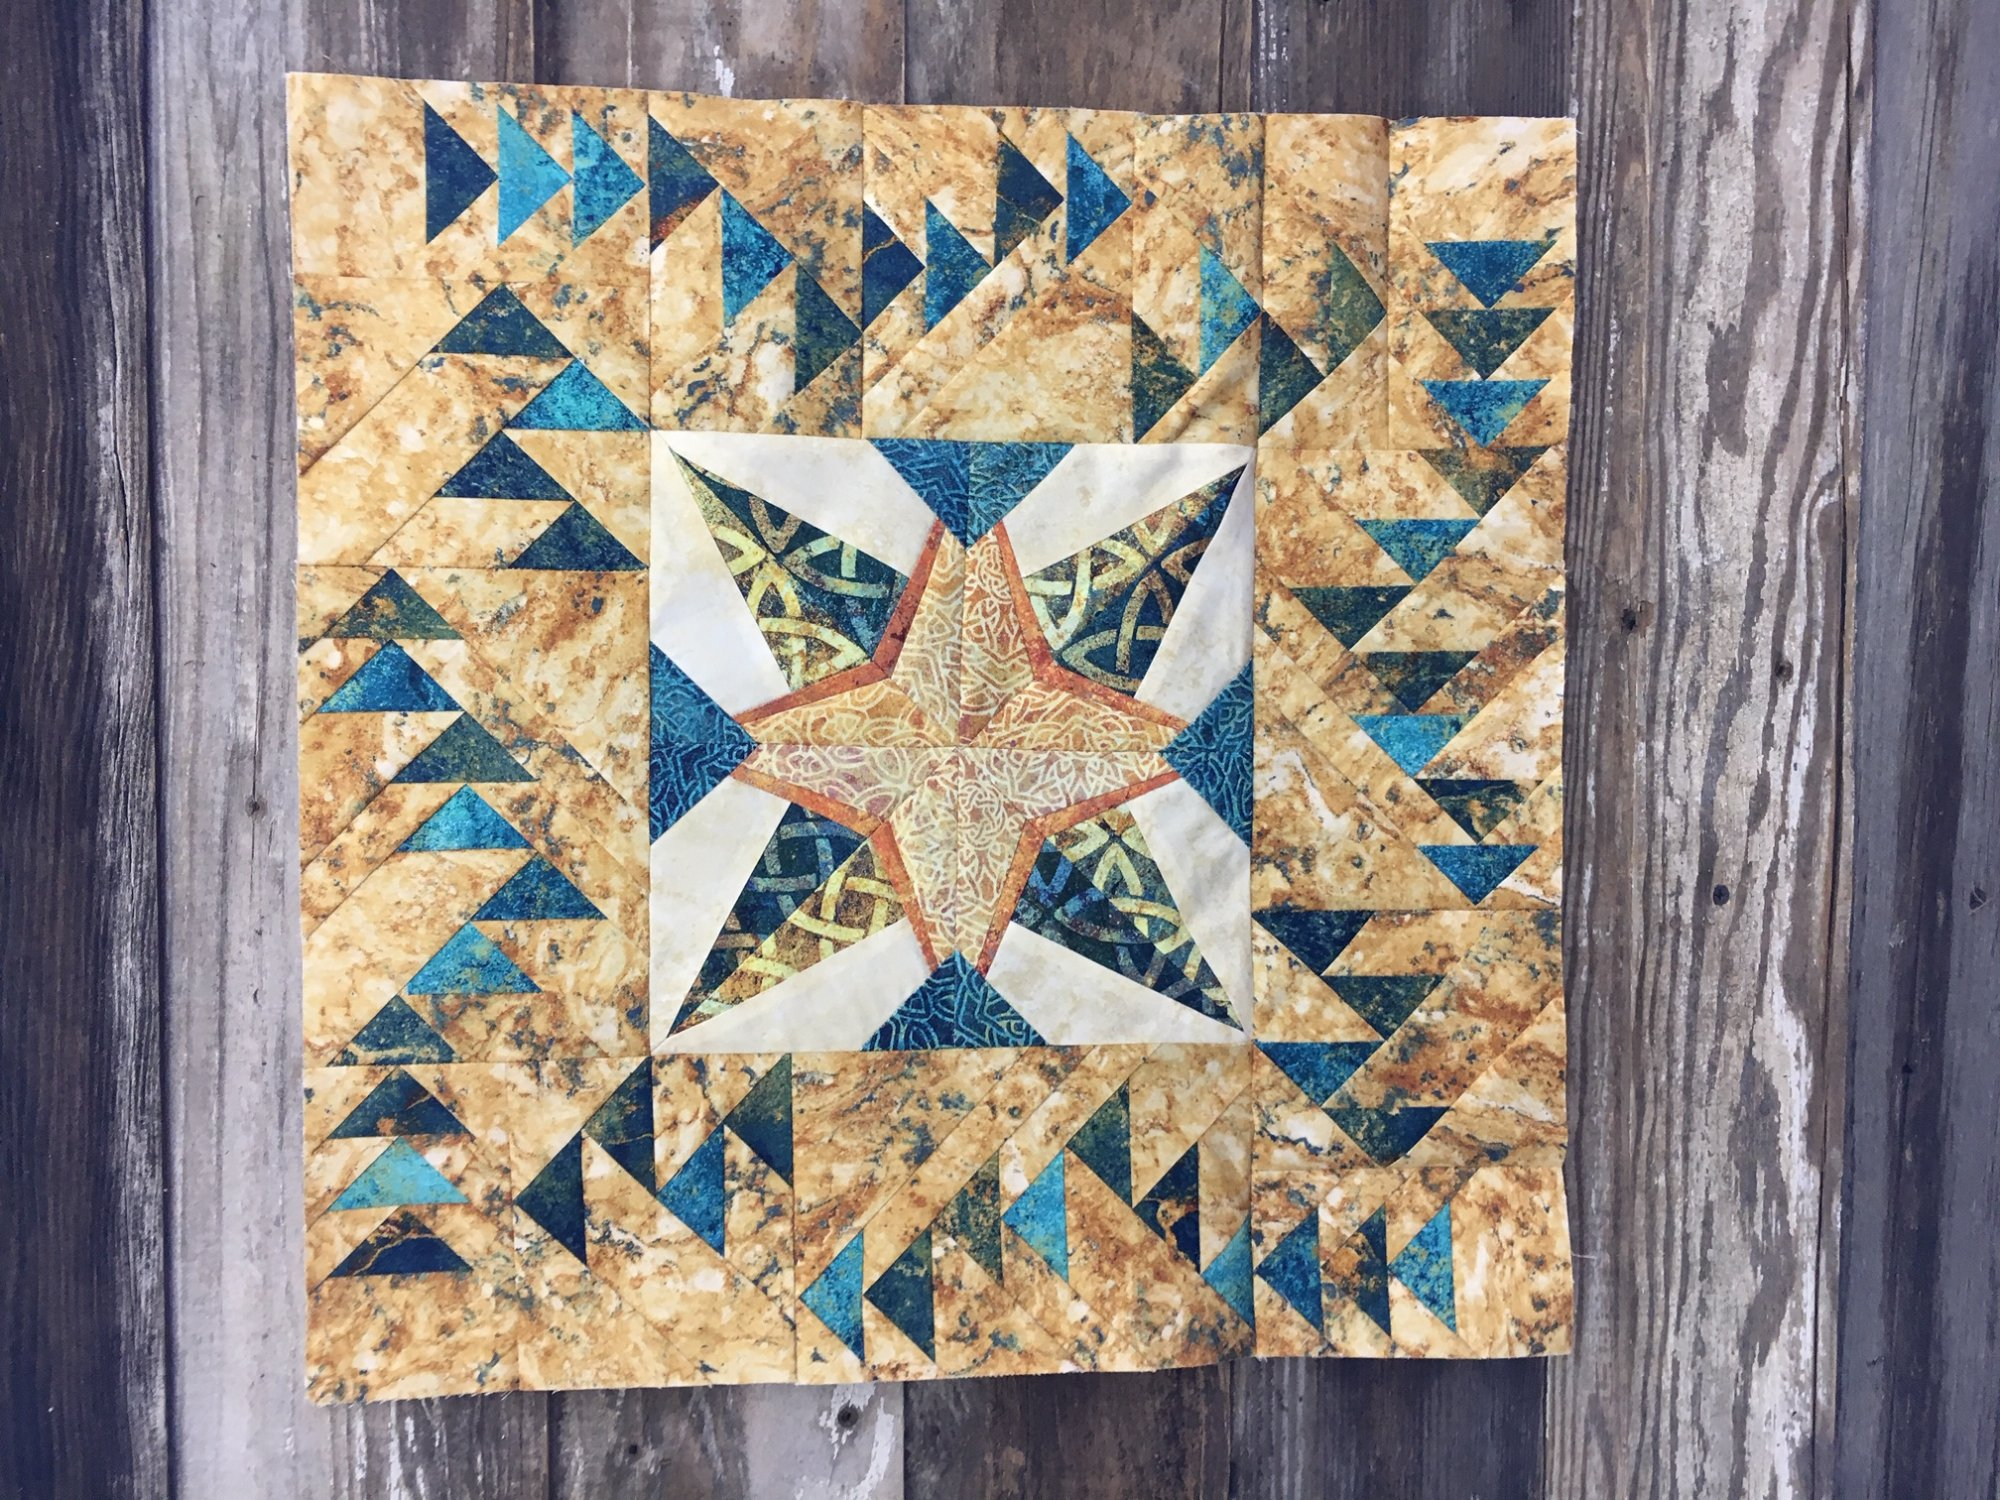 ACME's Solstice Block Party - Fabric + Pattern - 18x18 finished